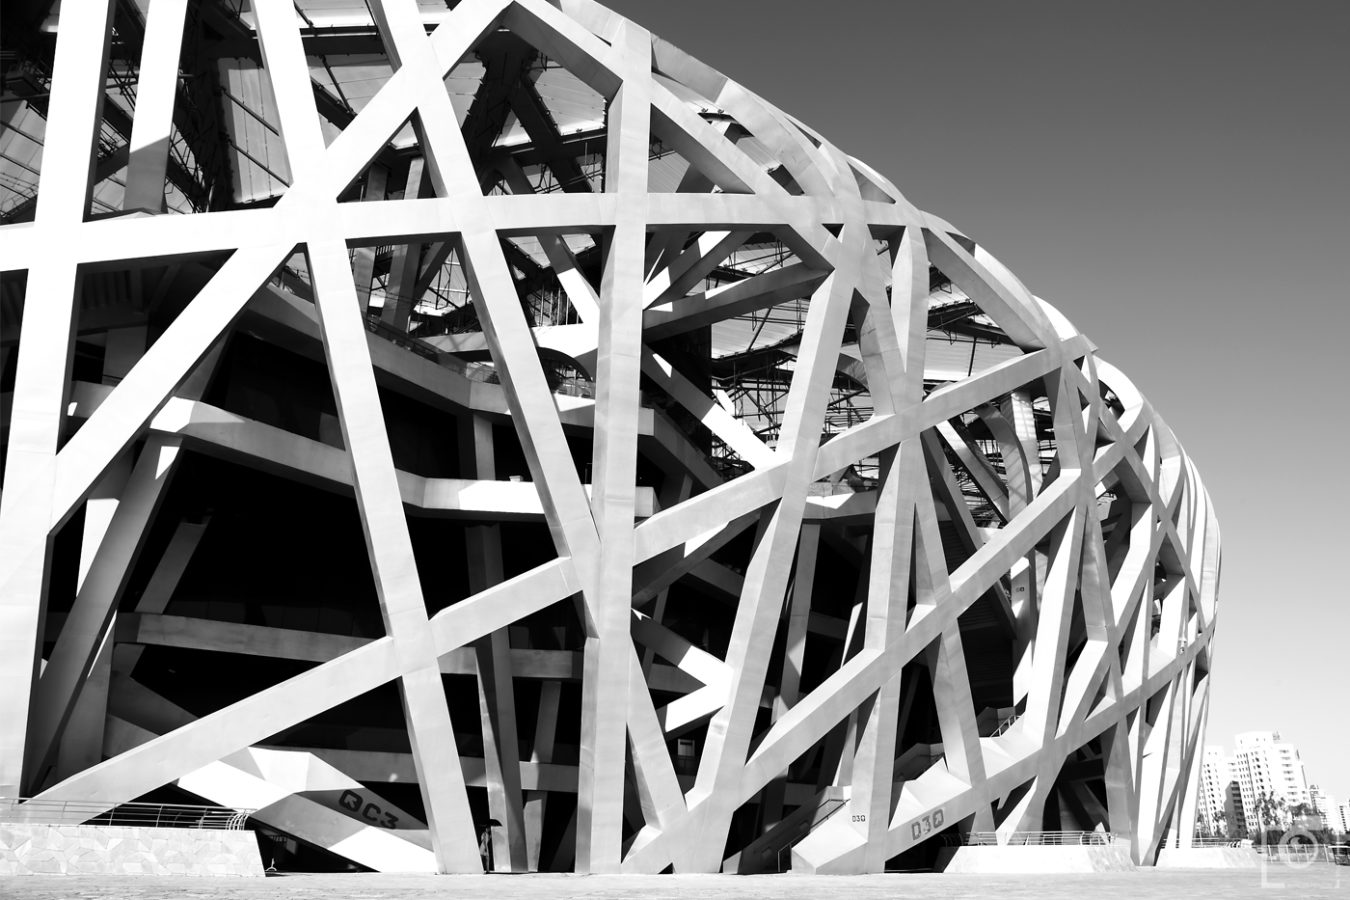 Beijing National Stadium (Bird's Nest/Olympic Stadium) - Architecture